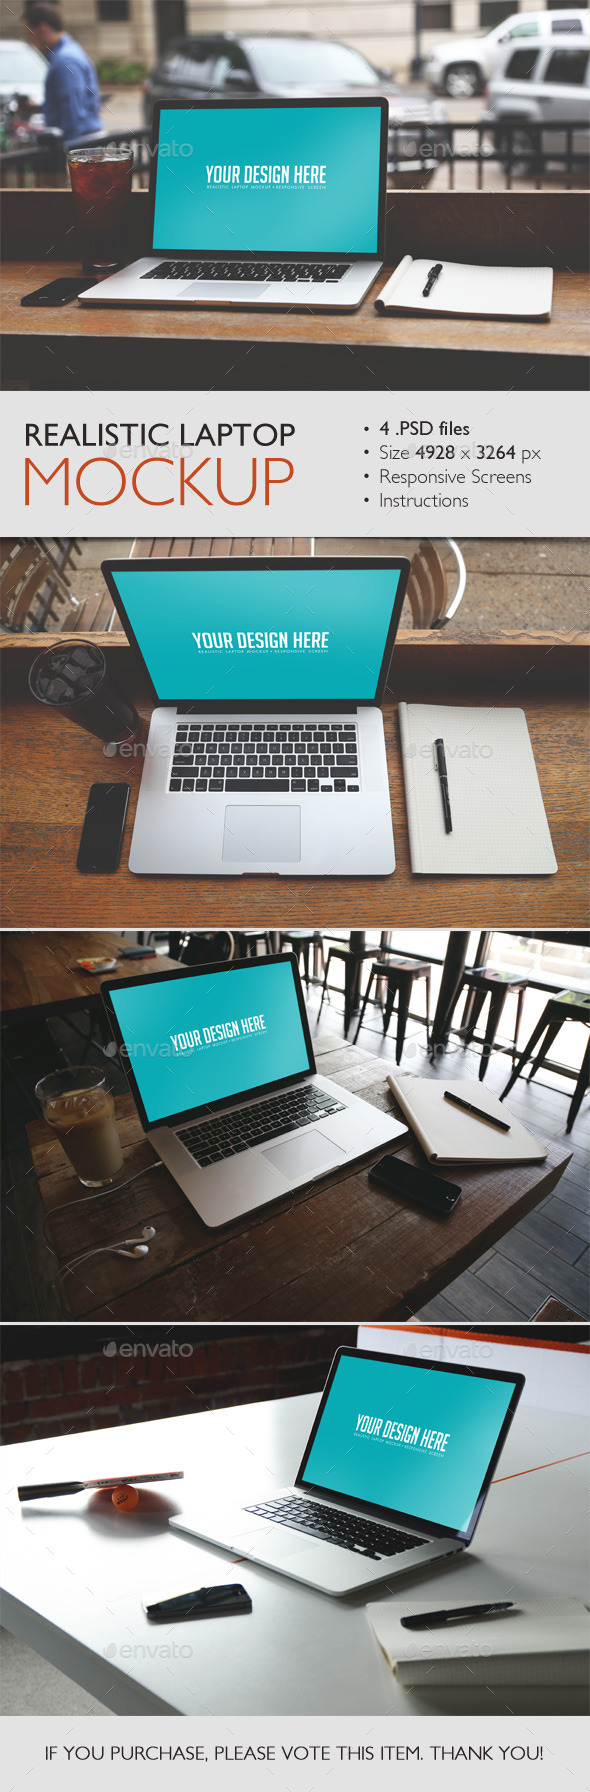 GraphicRiver Realistic Laptop Mockup 10343680